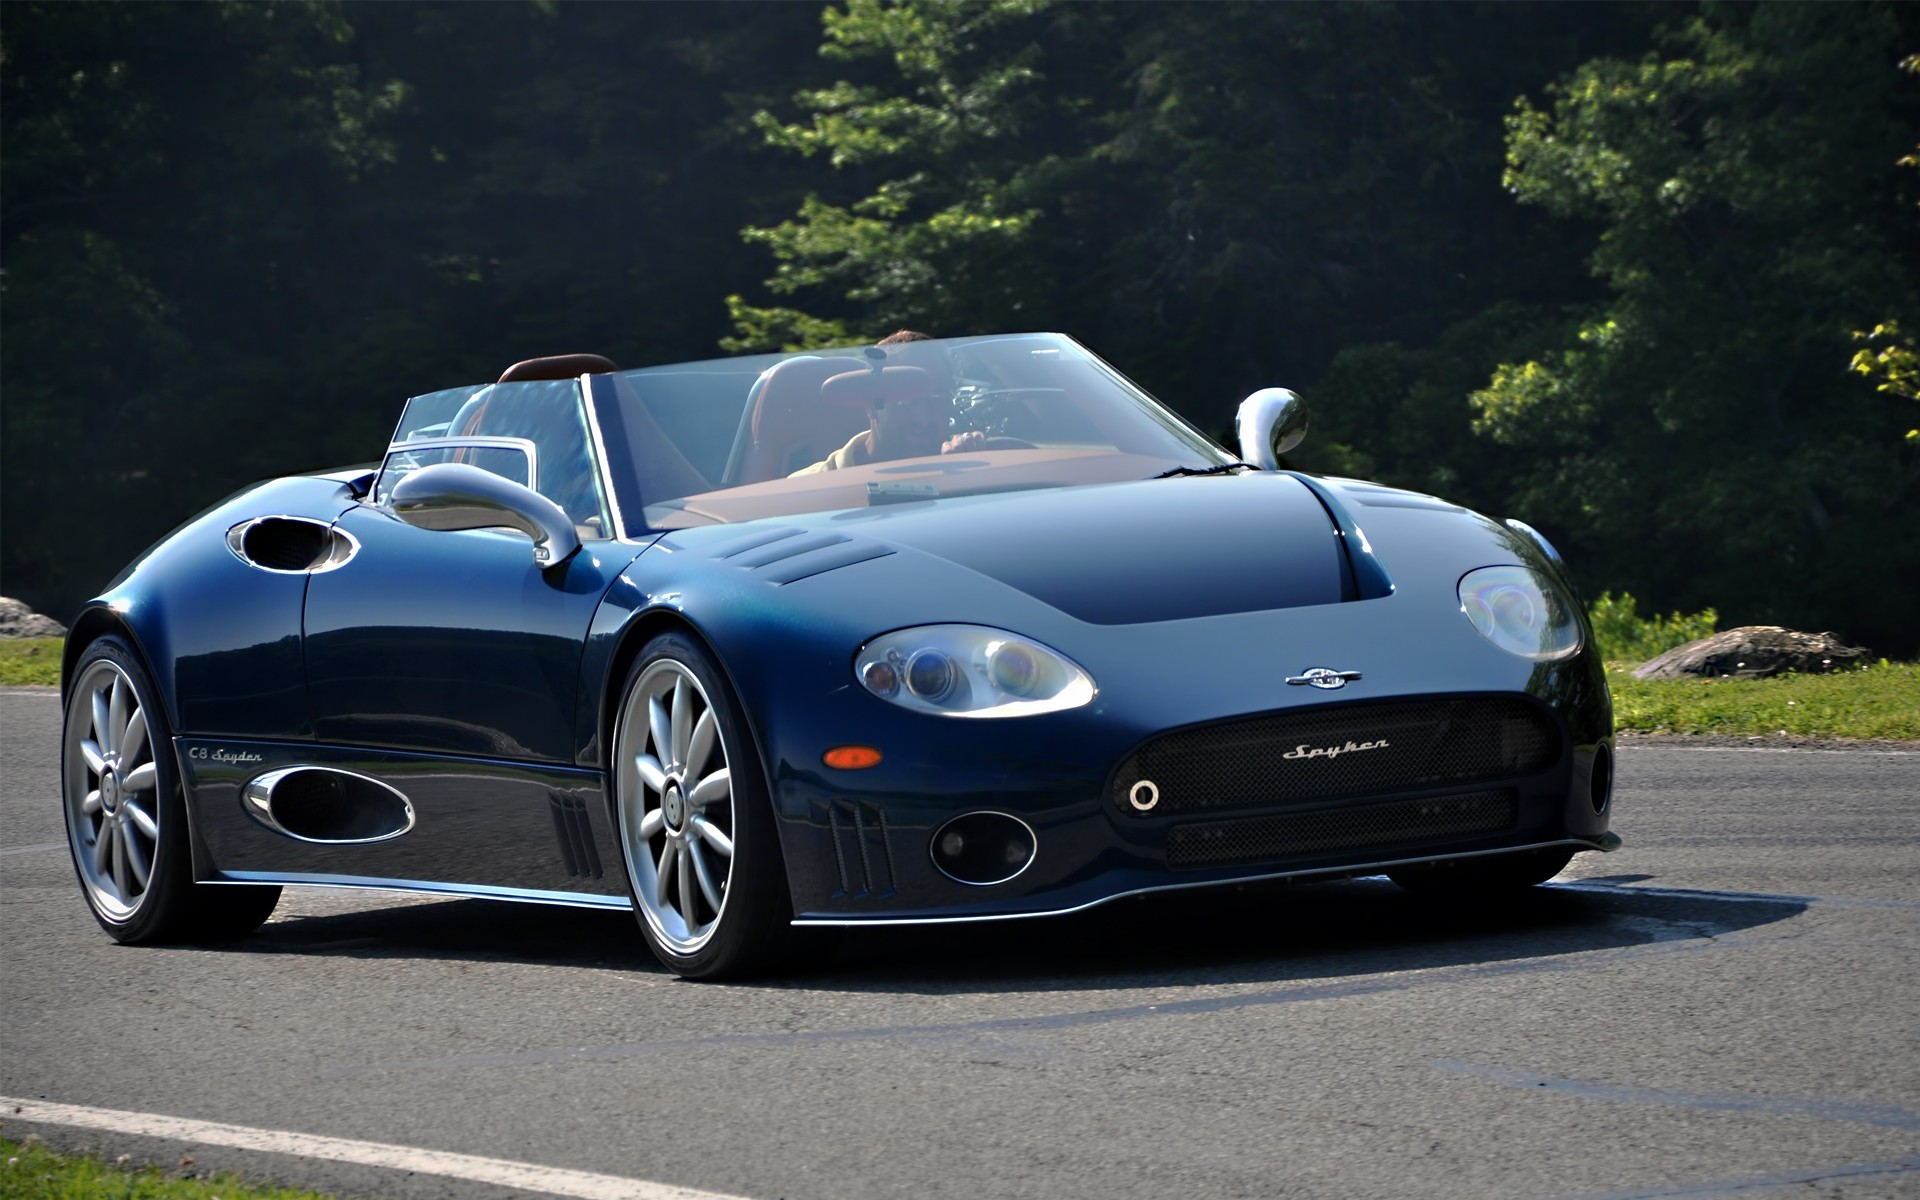 cars Spyker c8 HD Wallpaper